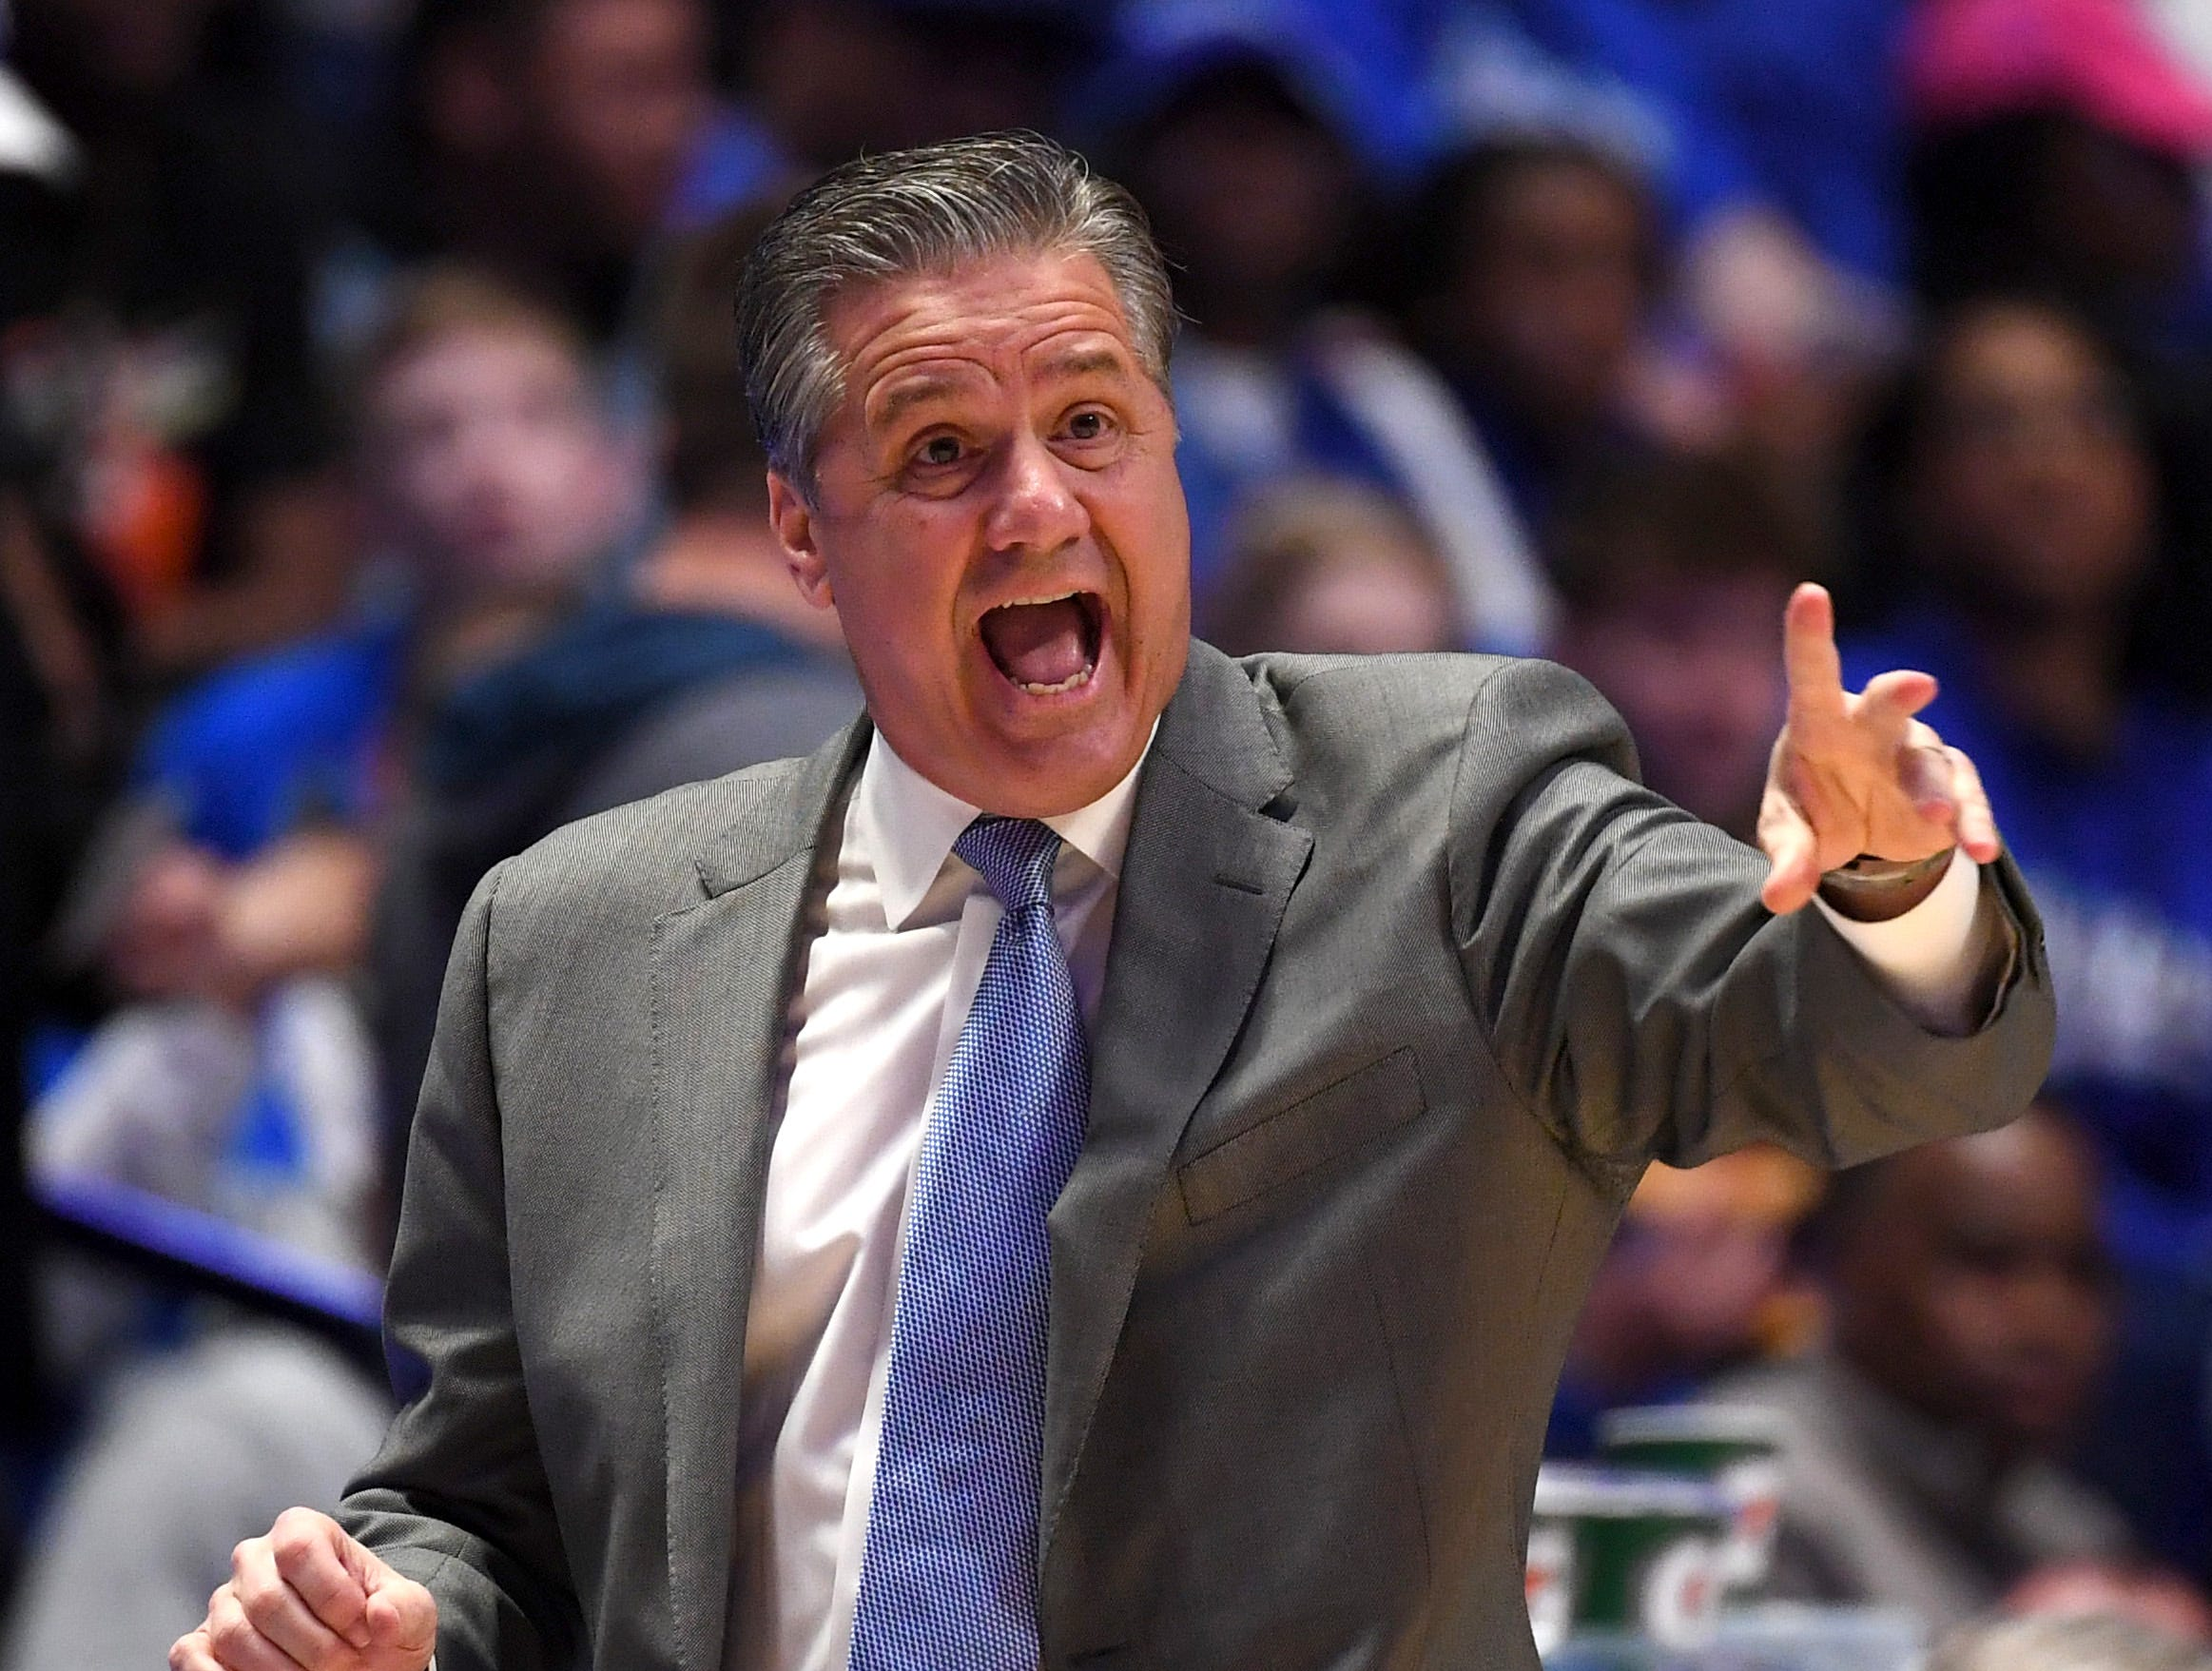 Mar 15, 2019; Nashville, TN, USA; Kentucky Wildcats head coach John Calipari reacts during the first half against the Alabama Crimson Tide in the SEC conference tournament at Bridgestone Arena. Mandatory Credit: Christopher Hanewinckel-USA TODAY Sports